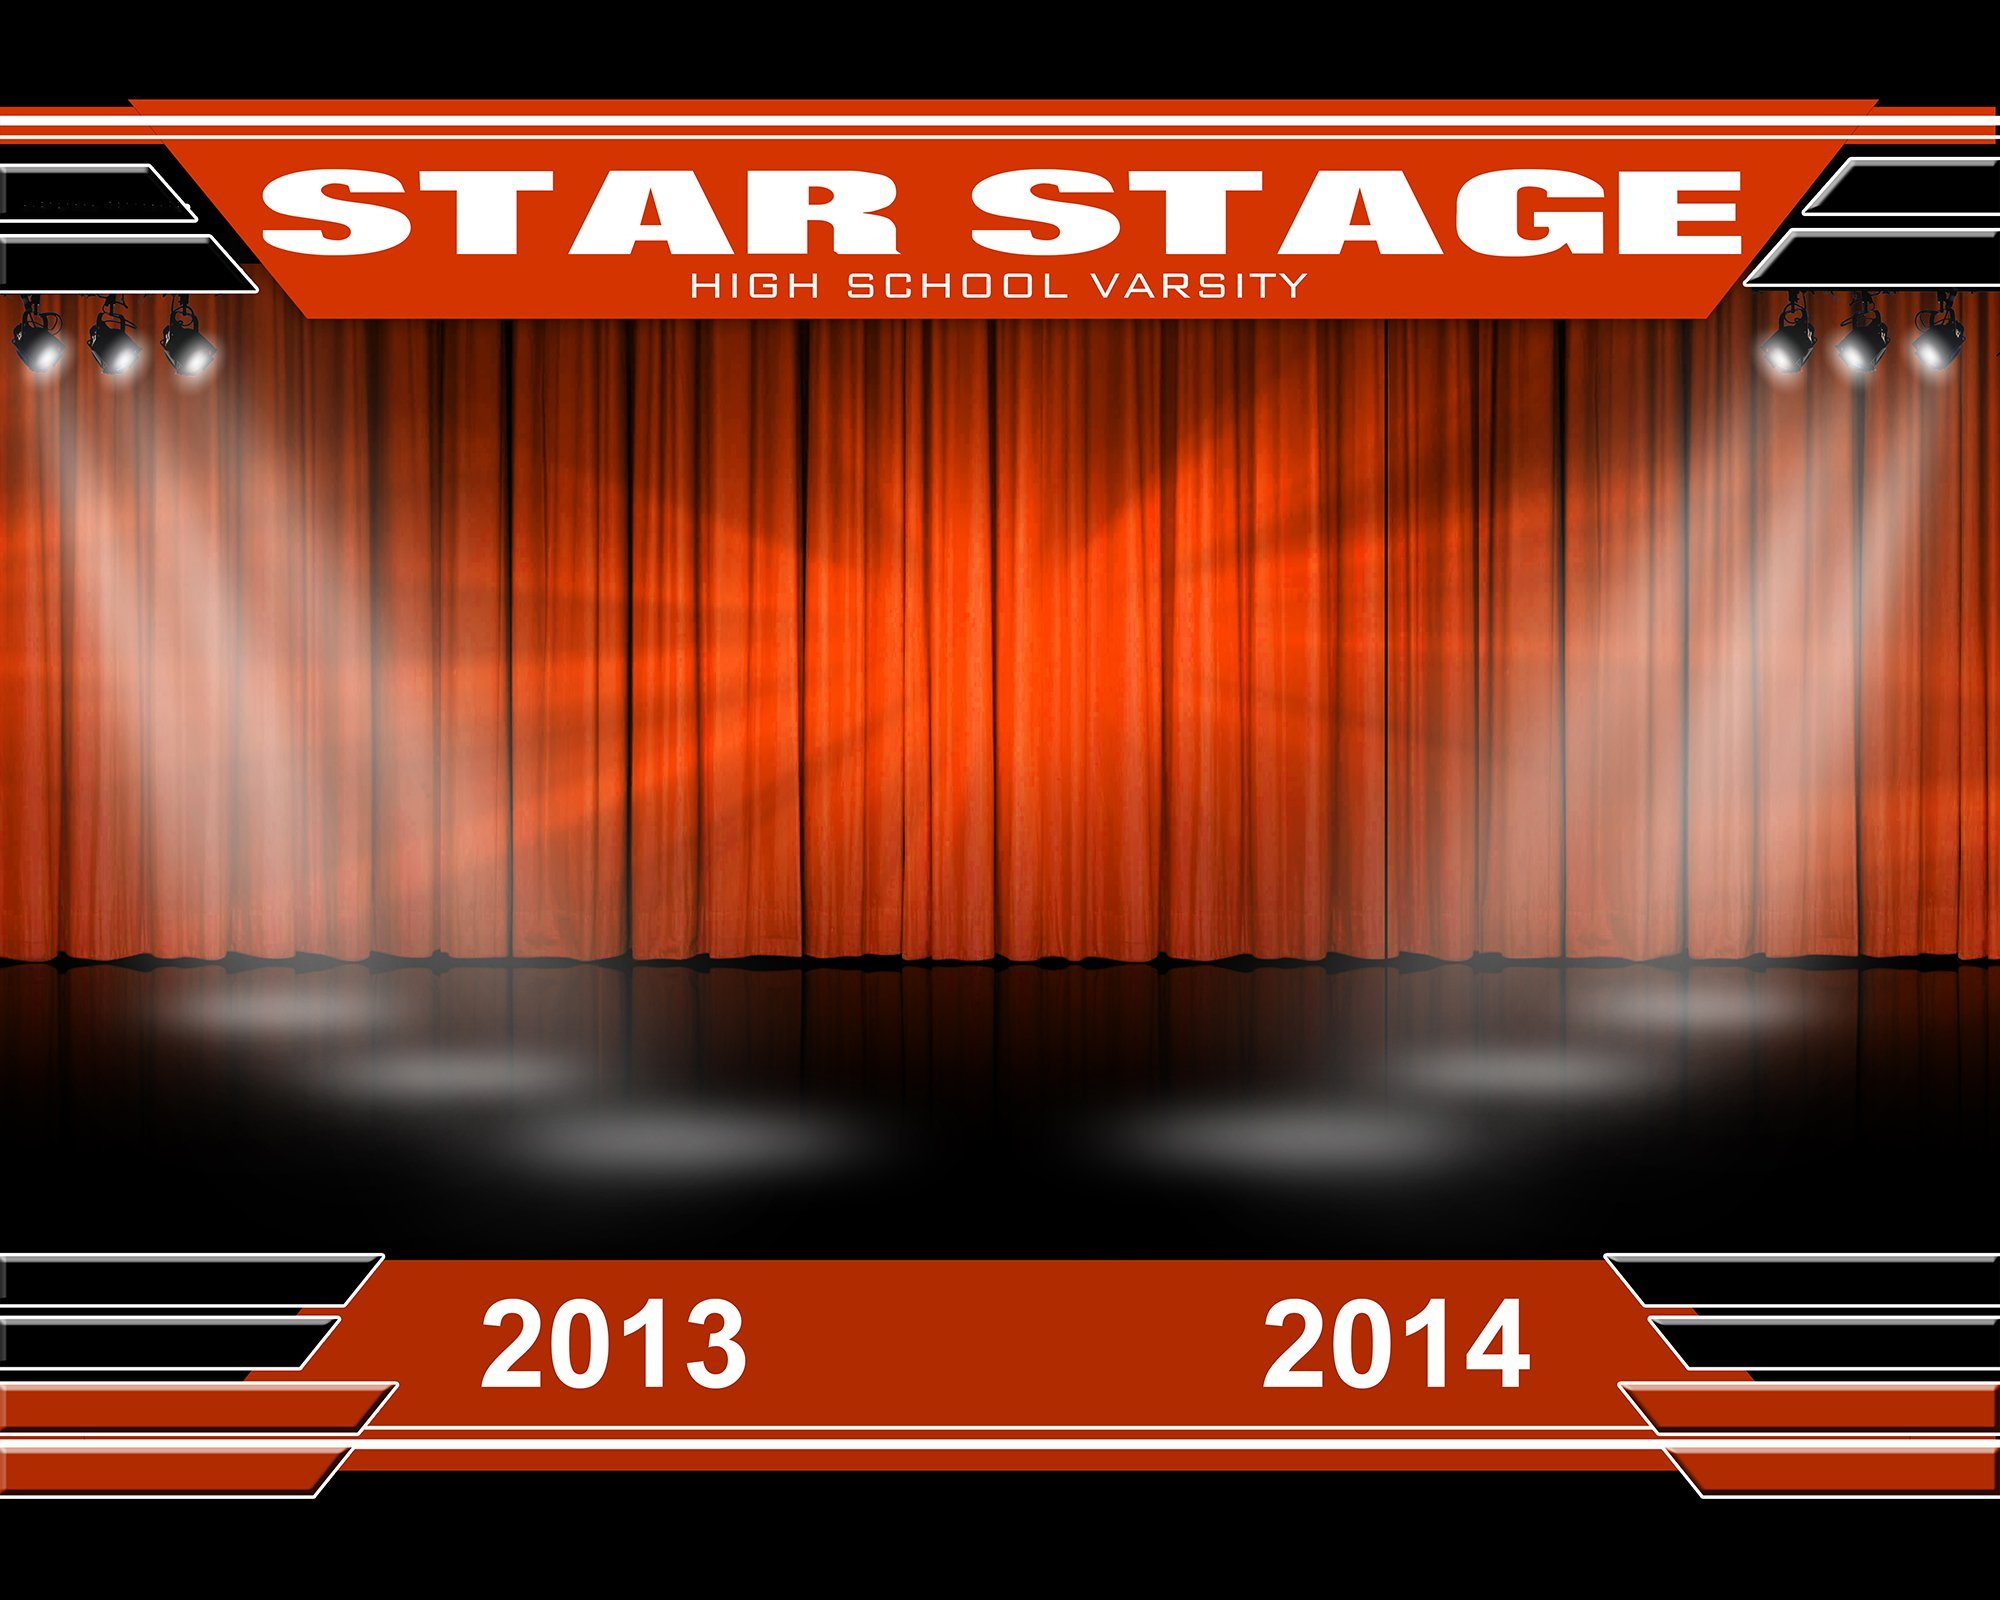 Star Stage v.2 - Xtreme Team Downloadable Template Photo Solutions PSMGraphix